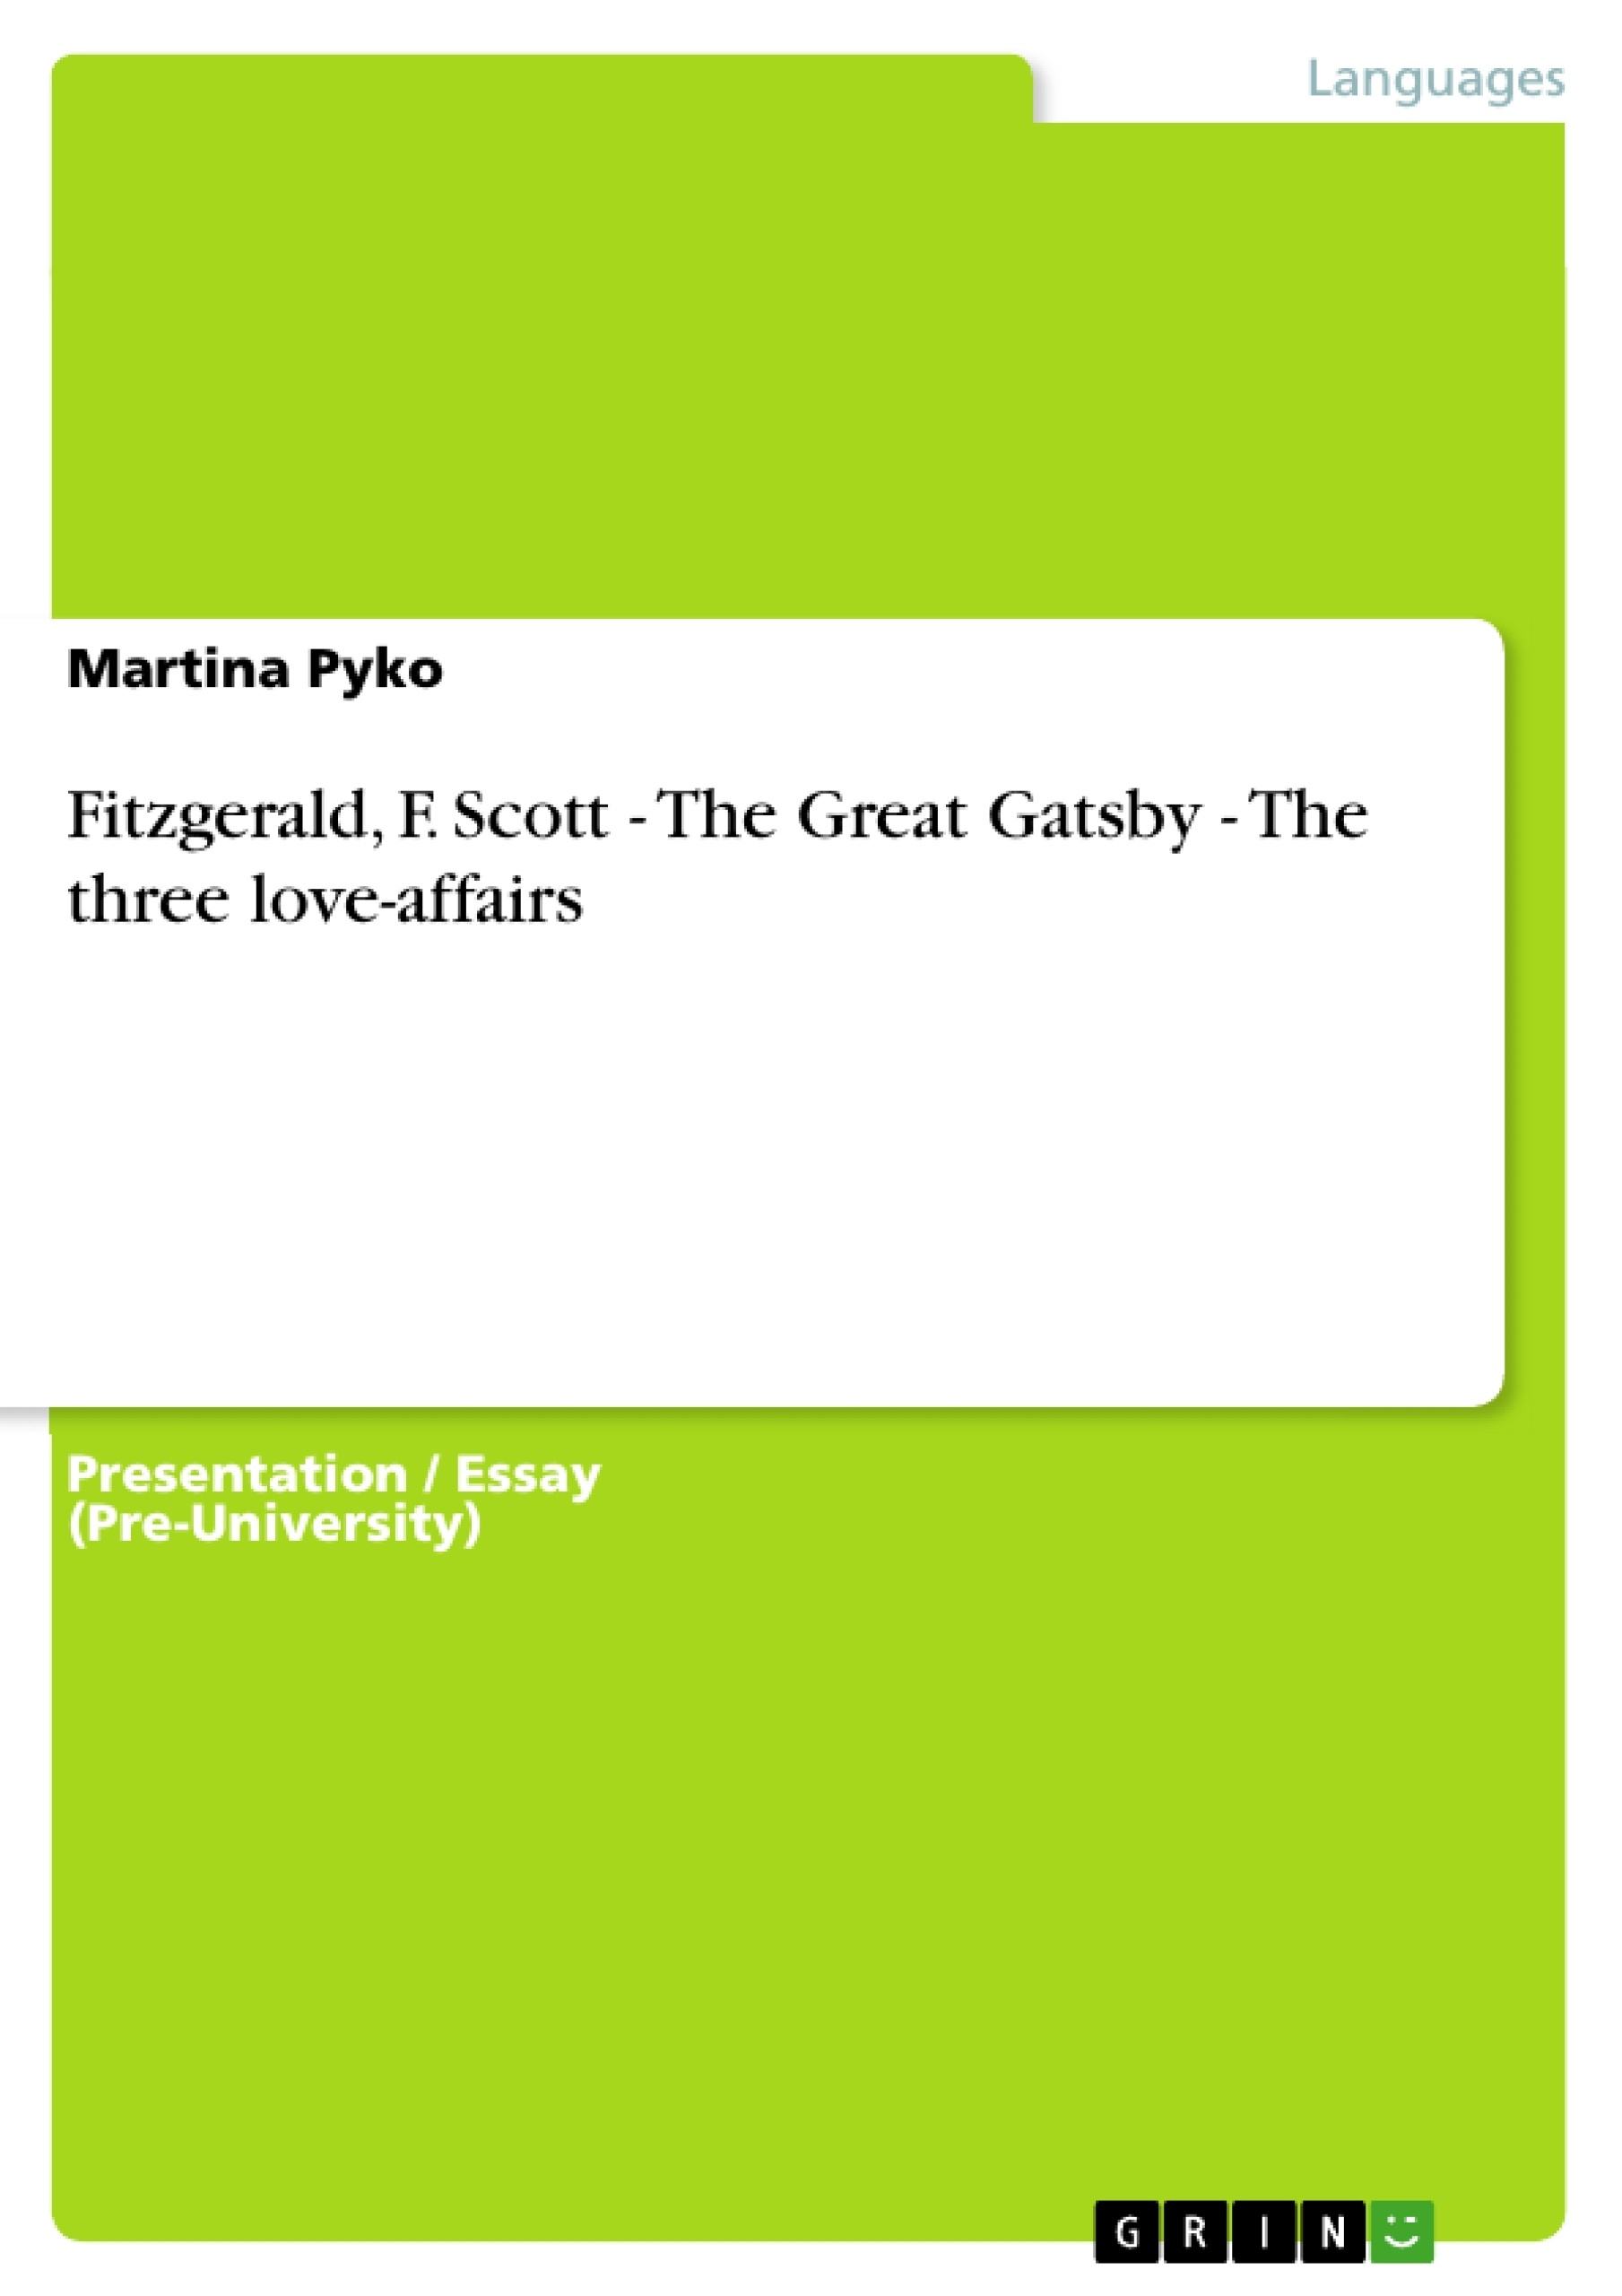 the great gatsby essay american dream character analysis of jay  fitzgerald f scott the great gatsby the three love affairs fitzgerald f scott the great gatsby essay on interesting dream